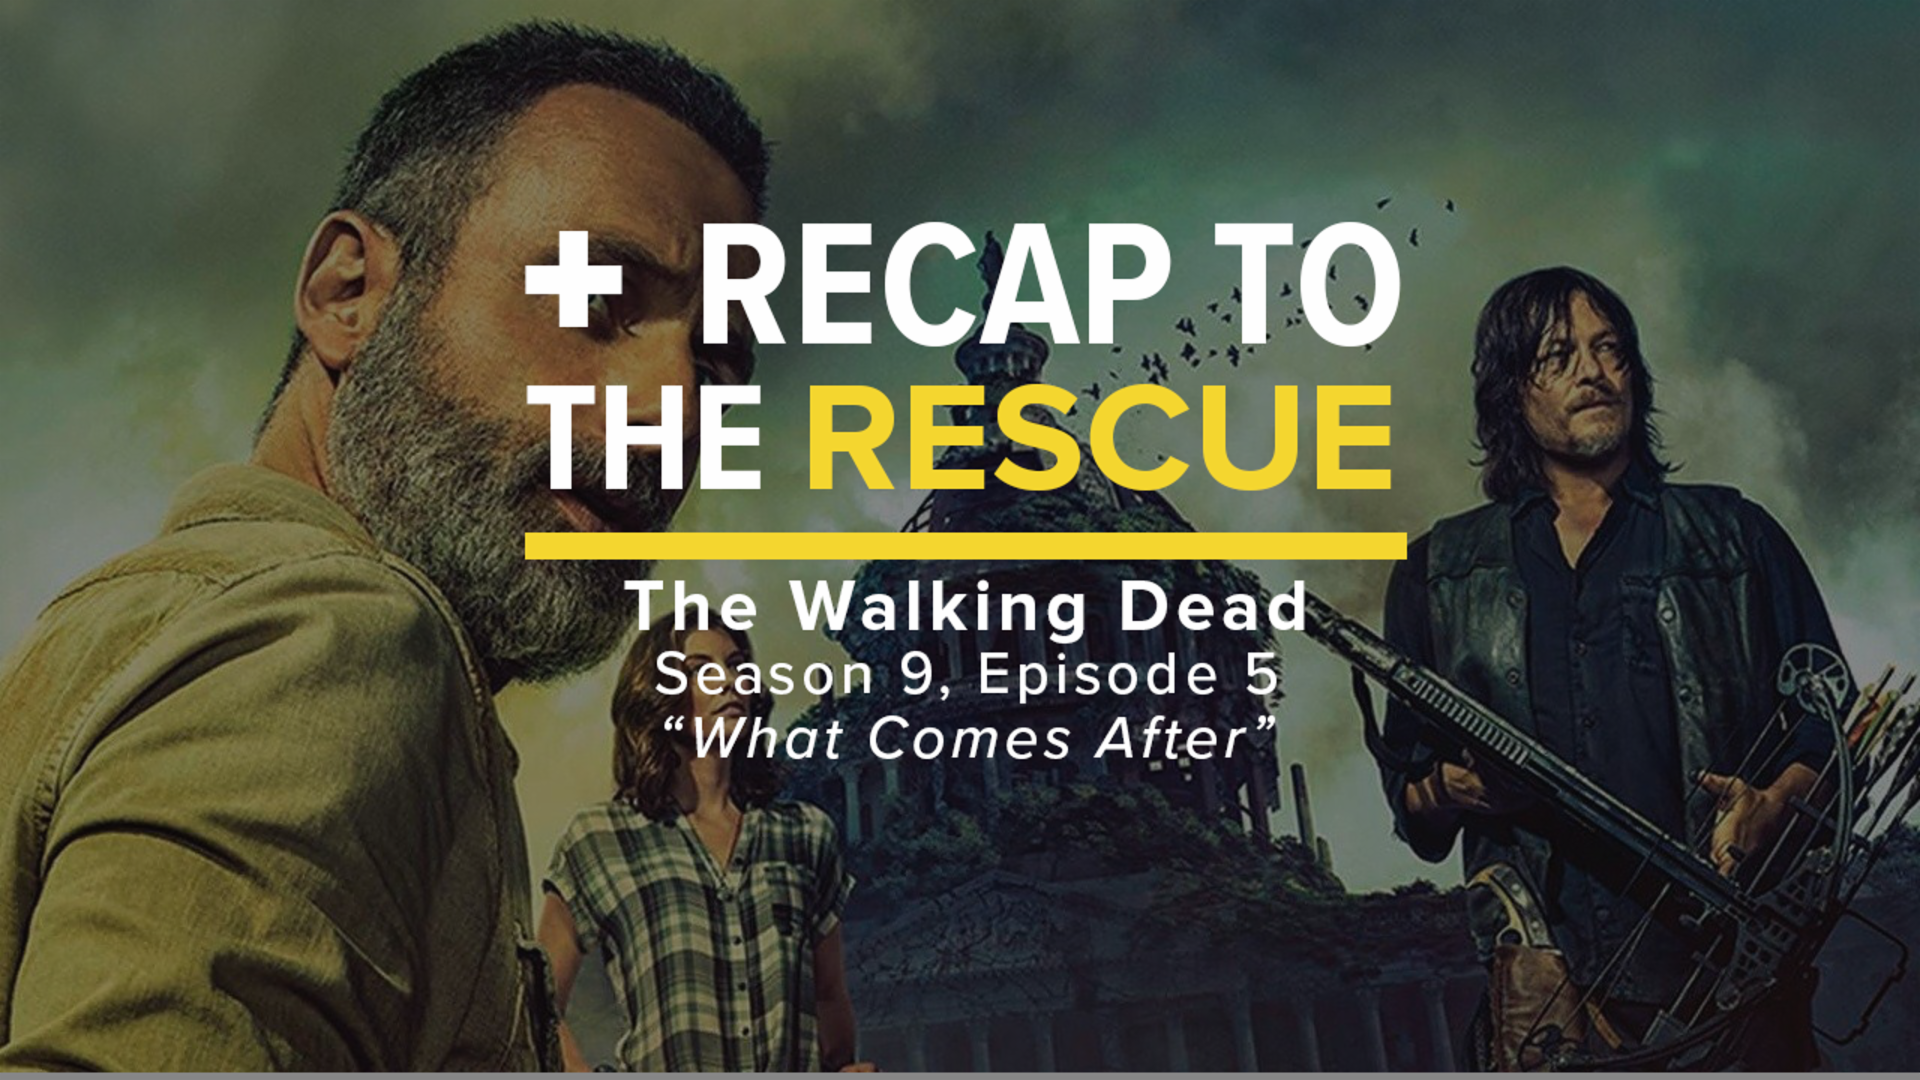 The Walking Dead: Rick's Last Episode Explained - Recap to the Rescue screen capture